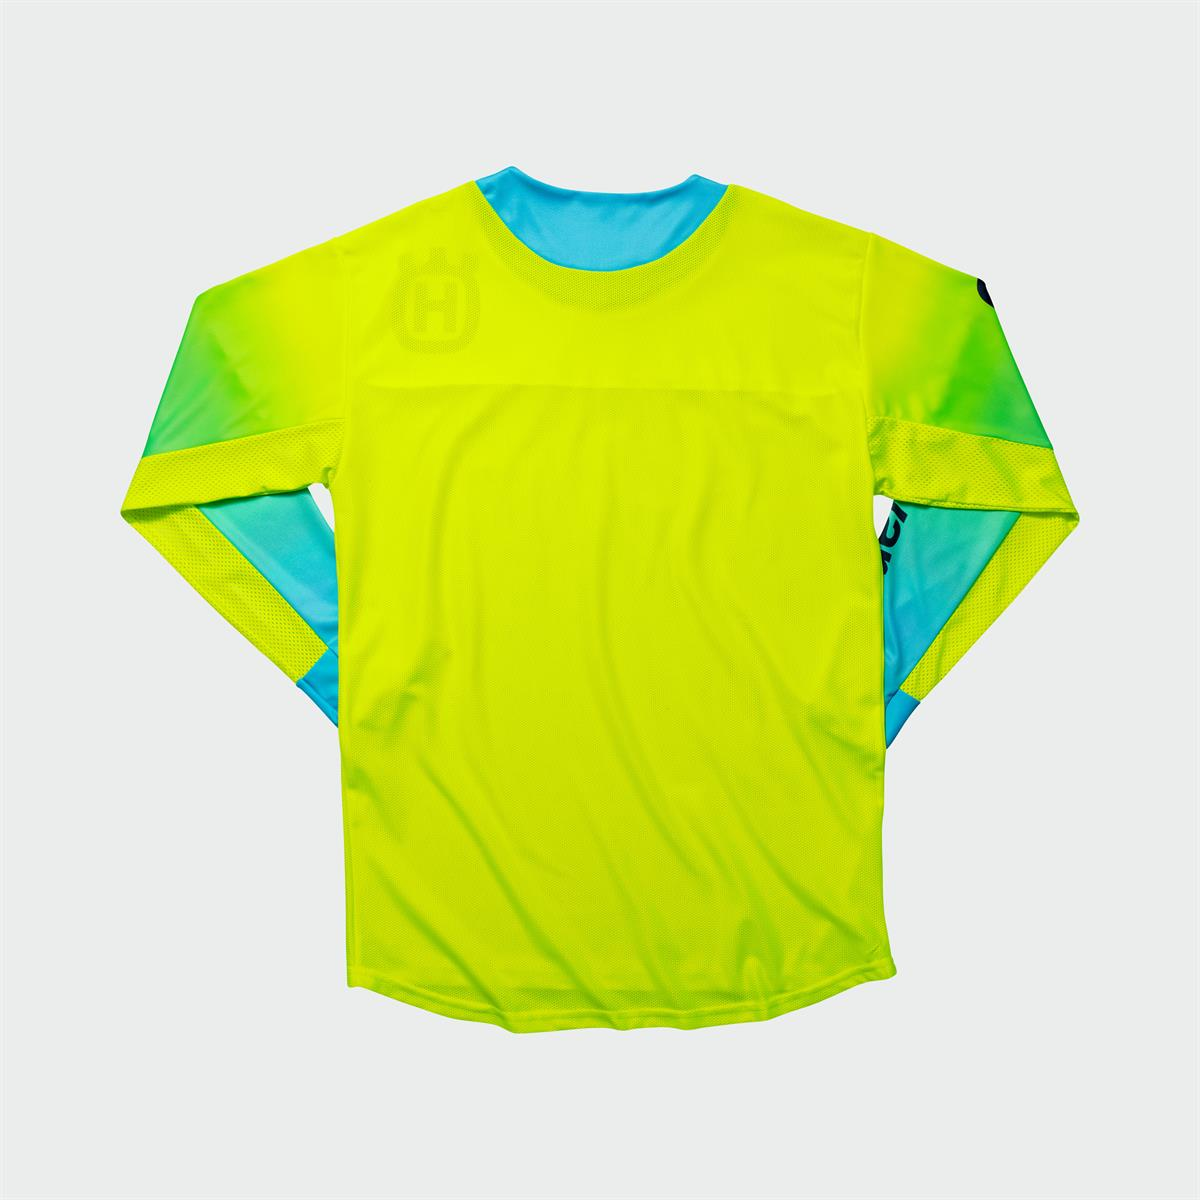 Husqvarna Functional Clothing - GOTLAND SHIRT YELLOW back